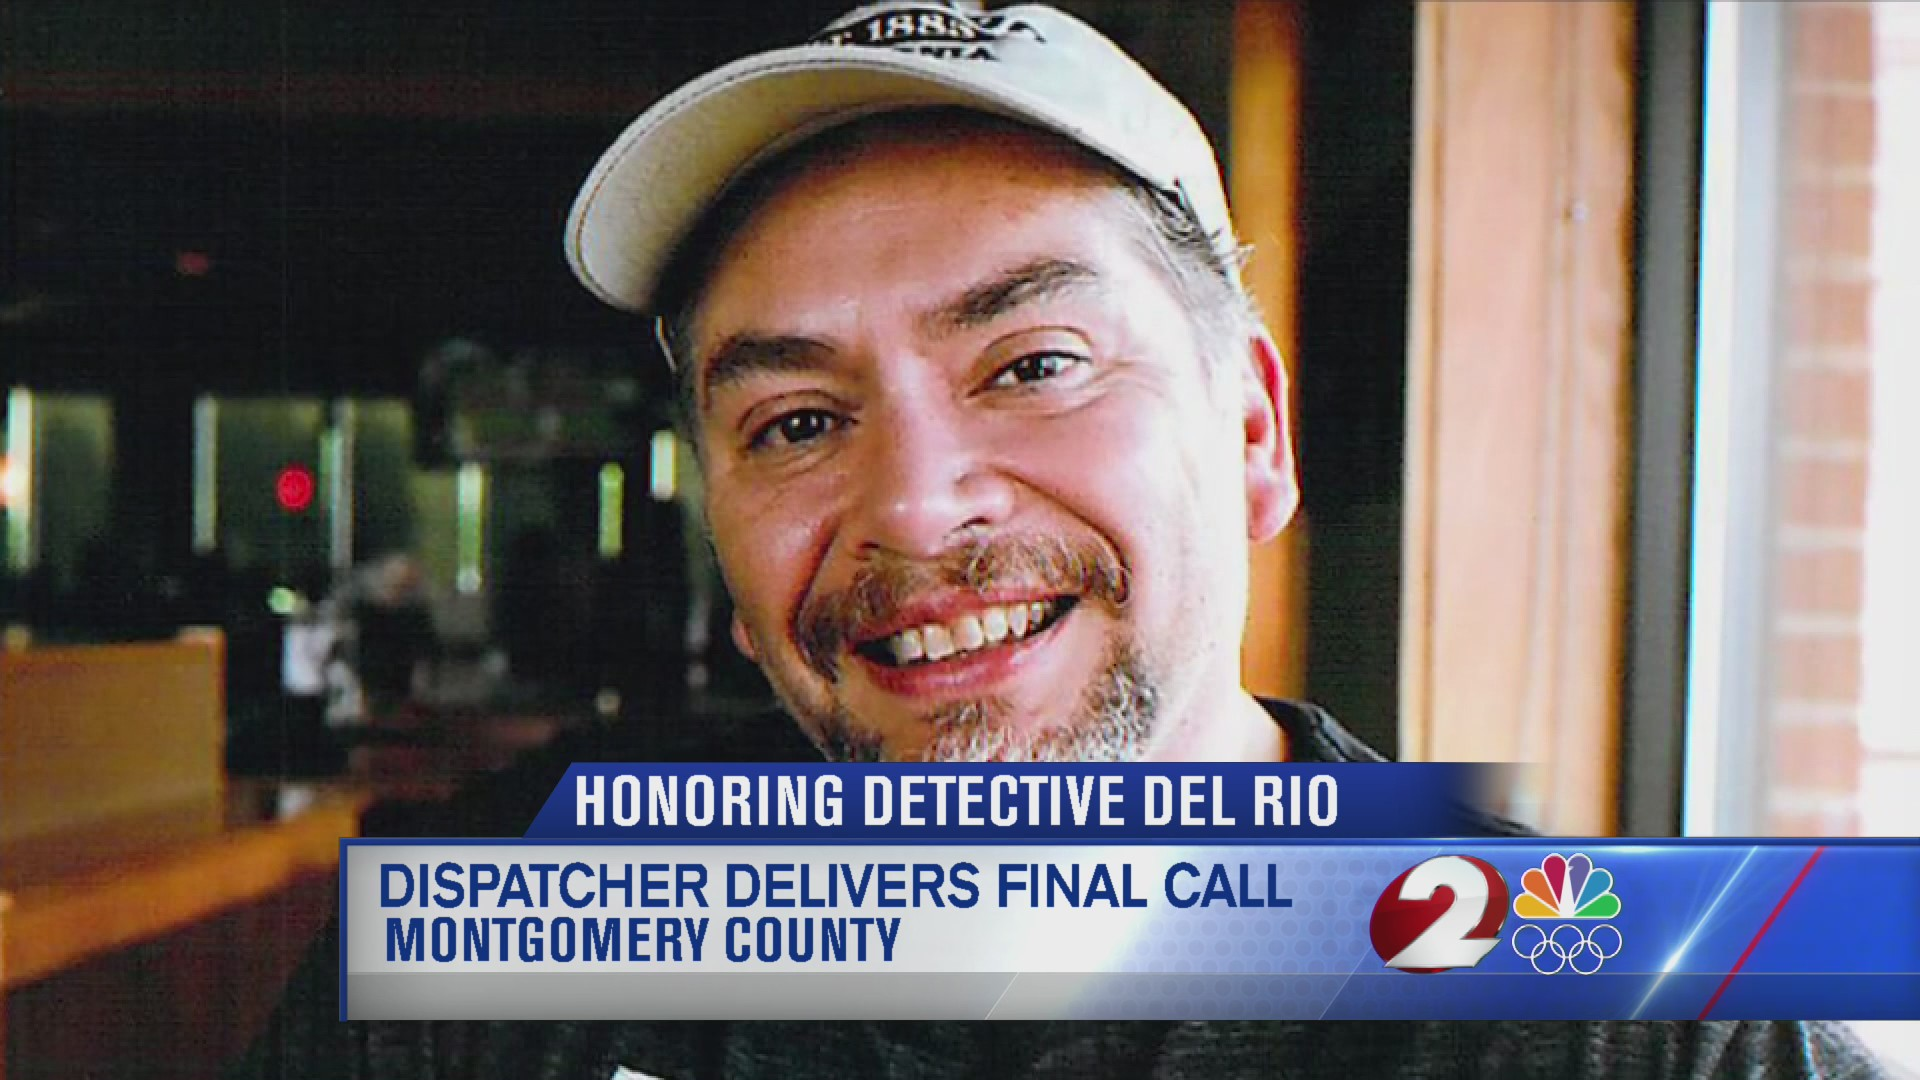 Dispatcher delivers end of watch call for Del Rio